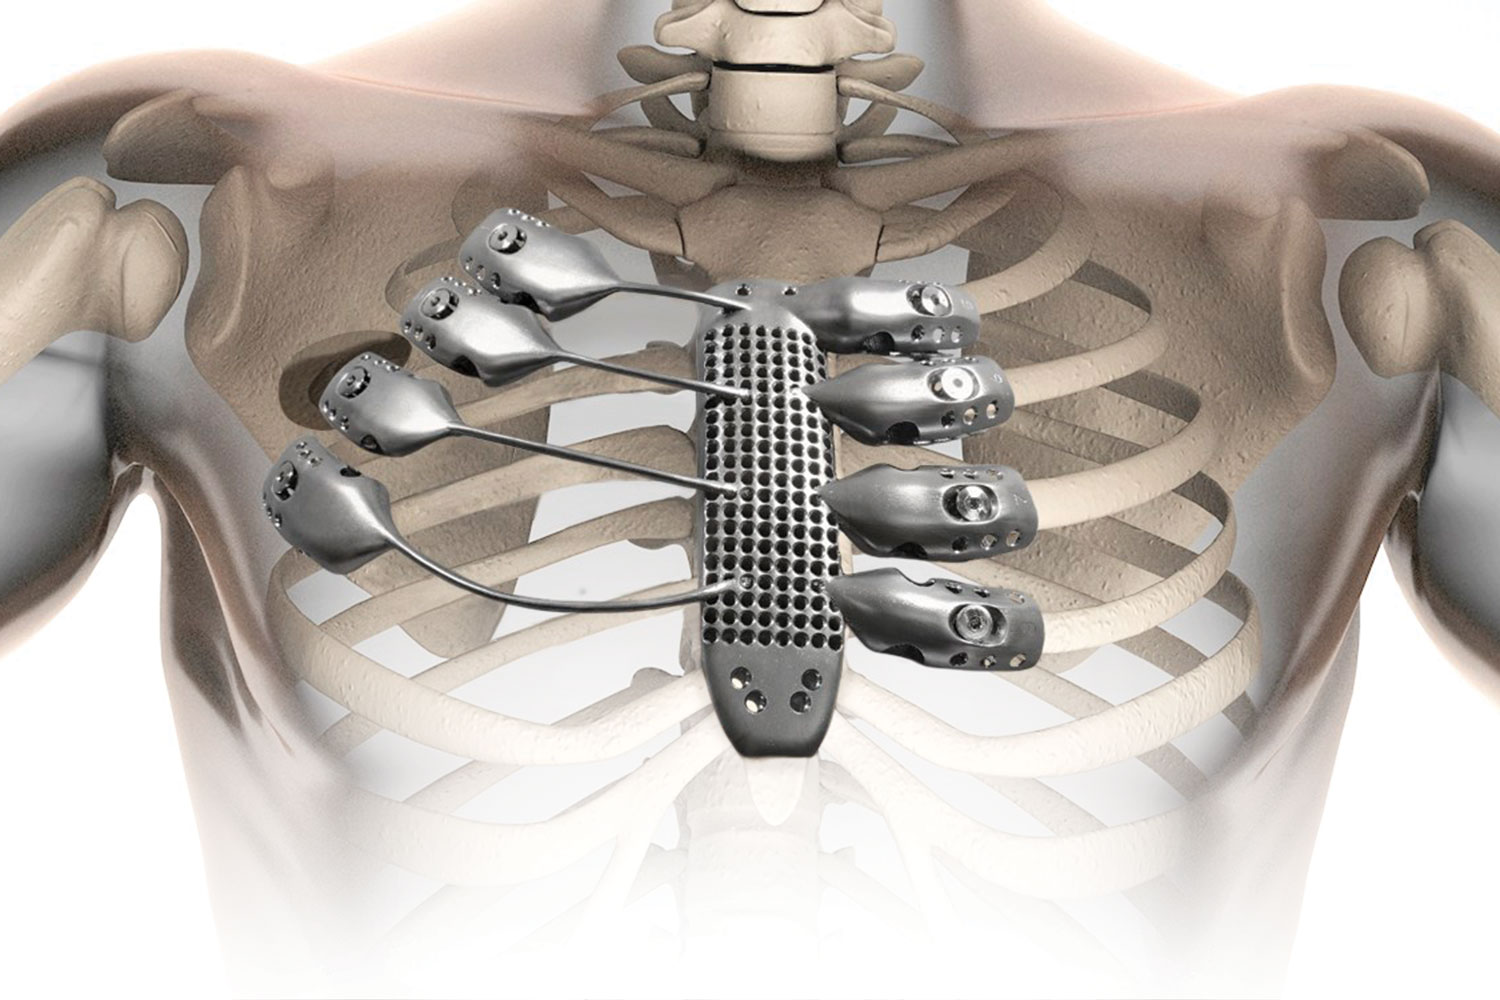 A 3D-printed rib cage and sternum